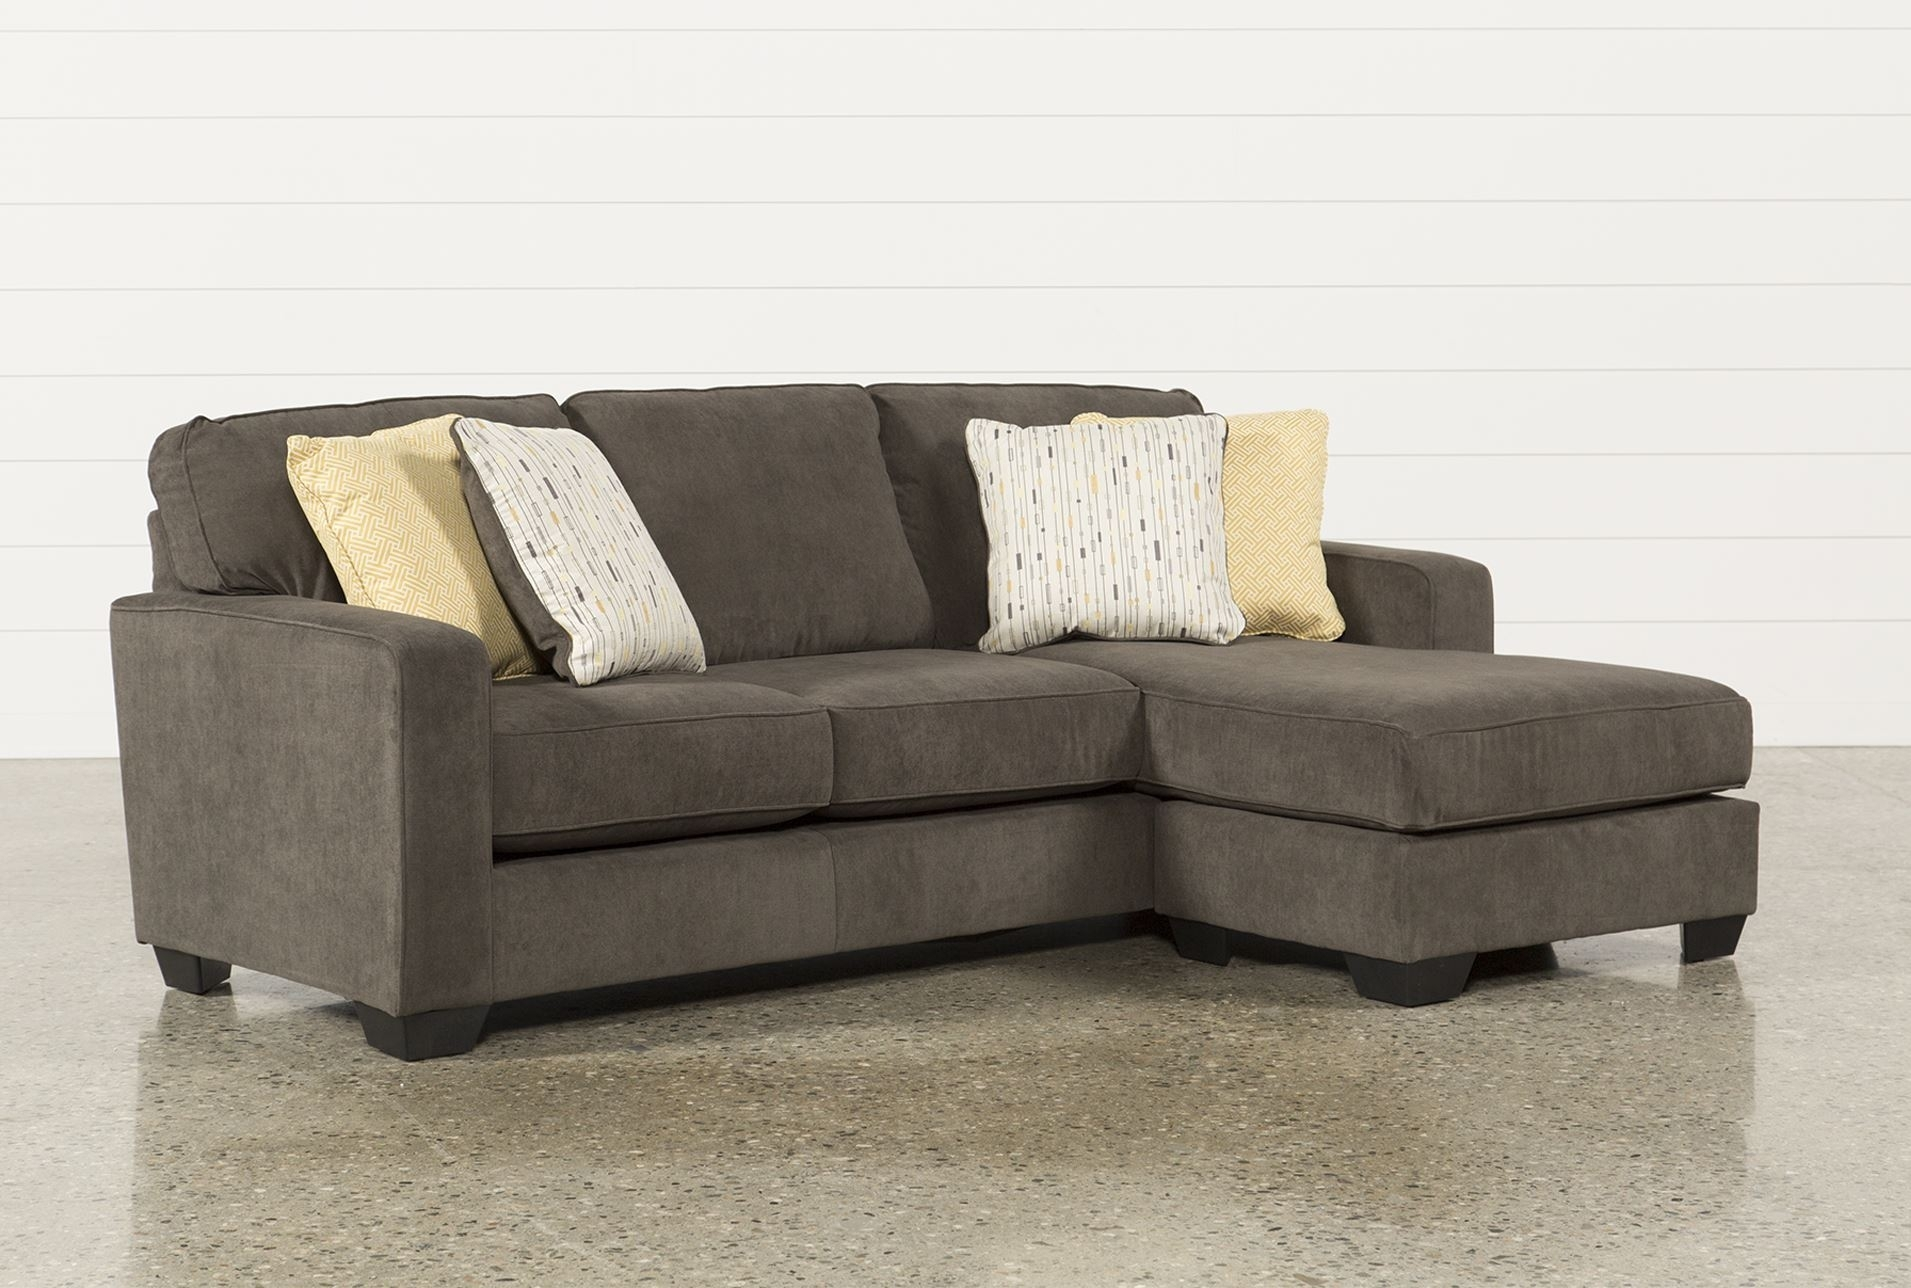 Sectional Sofa With Chaise | Aifaresidency With Living Spaces Sectional Sofas (View 10 of 10)